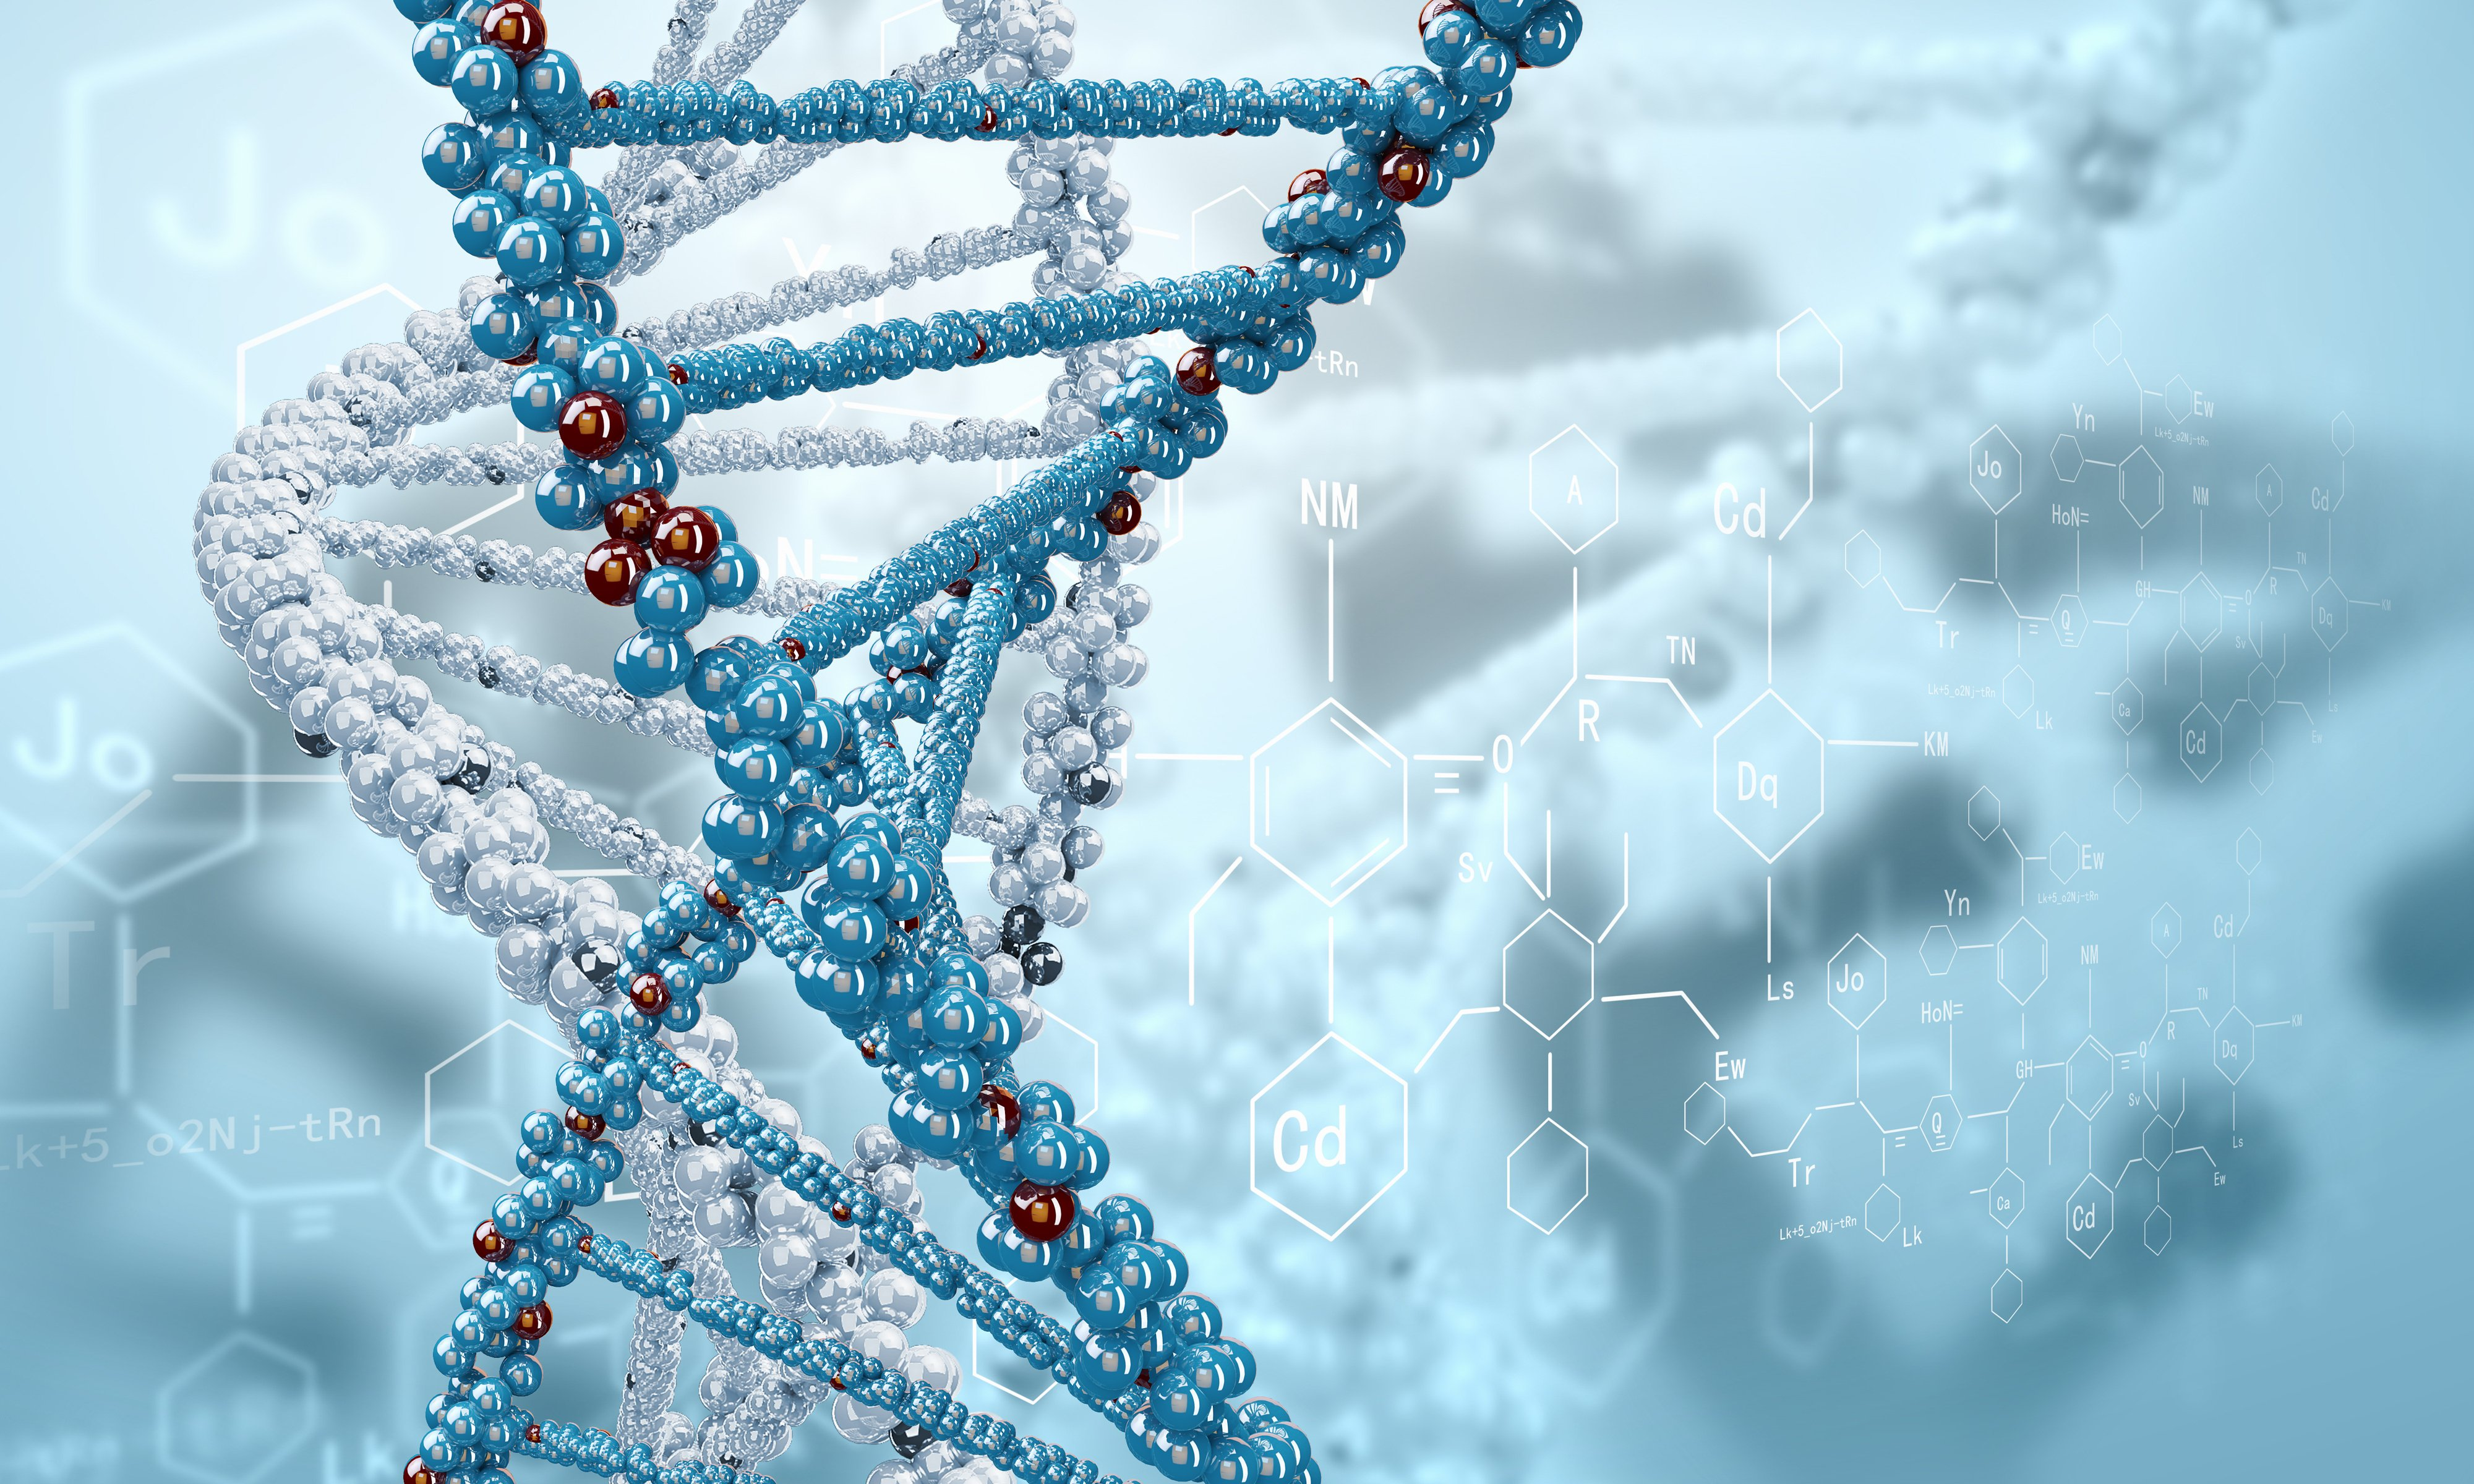 Dna Background Hd Rendering the dna of formula 4000x2400